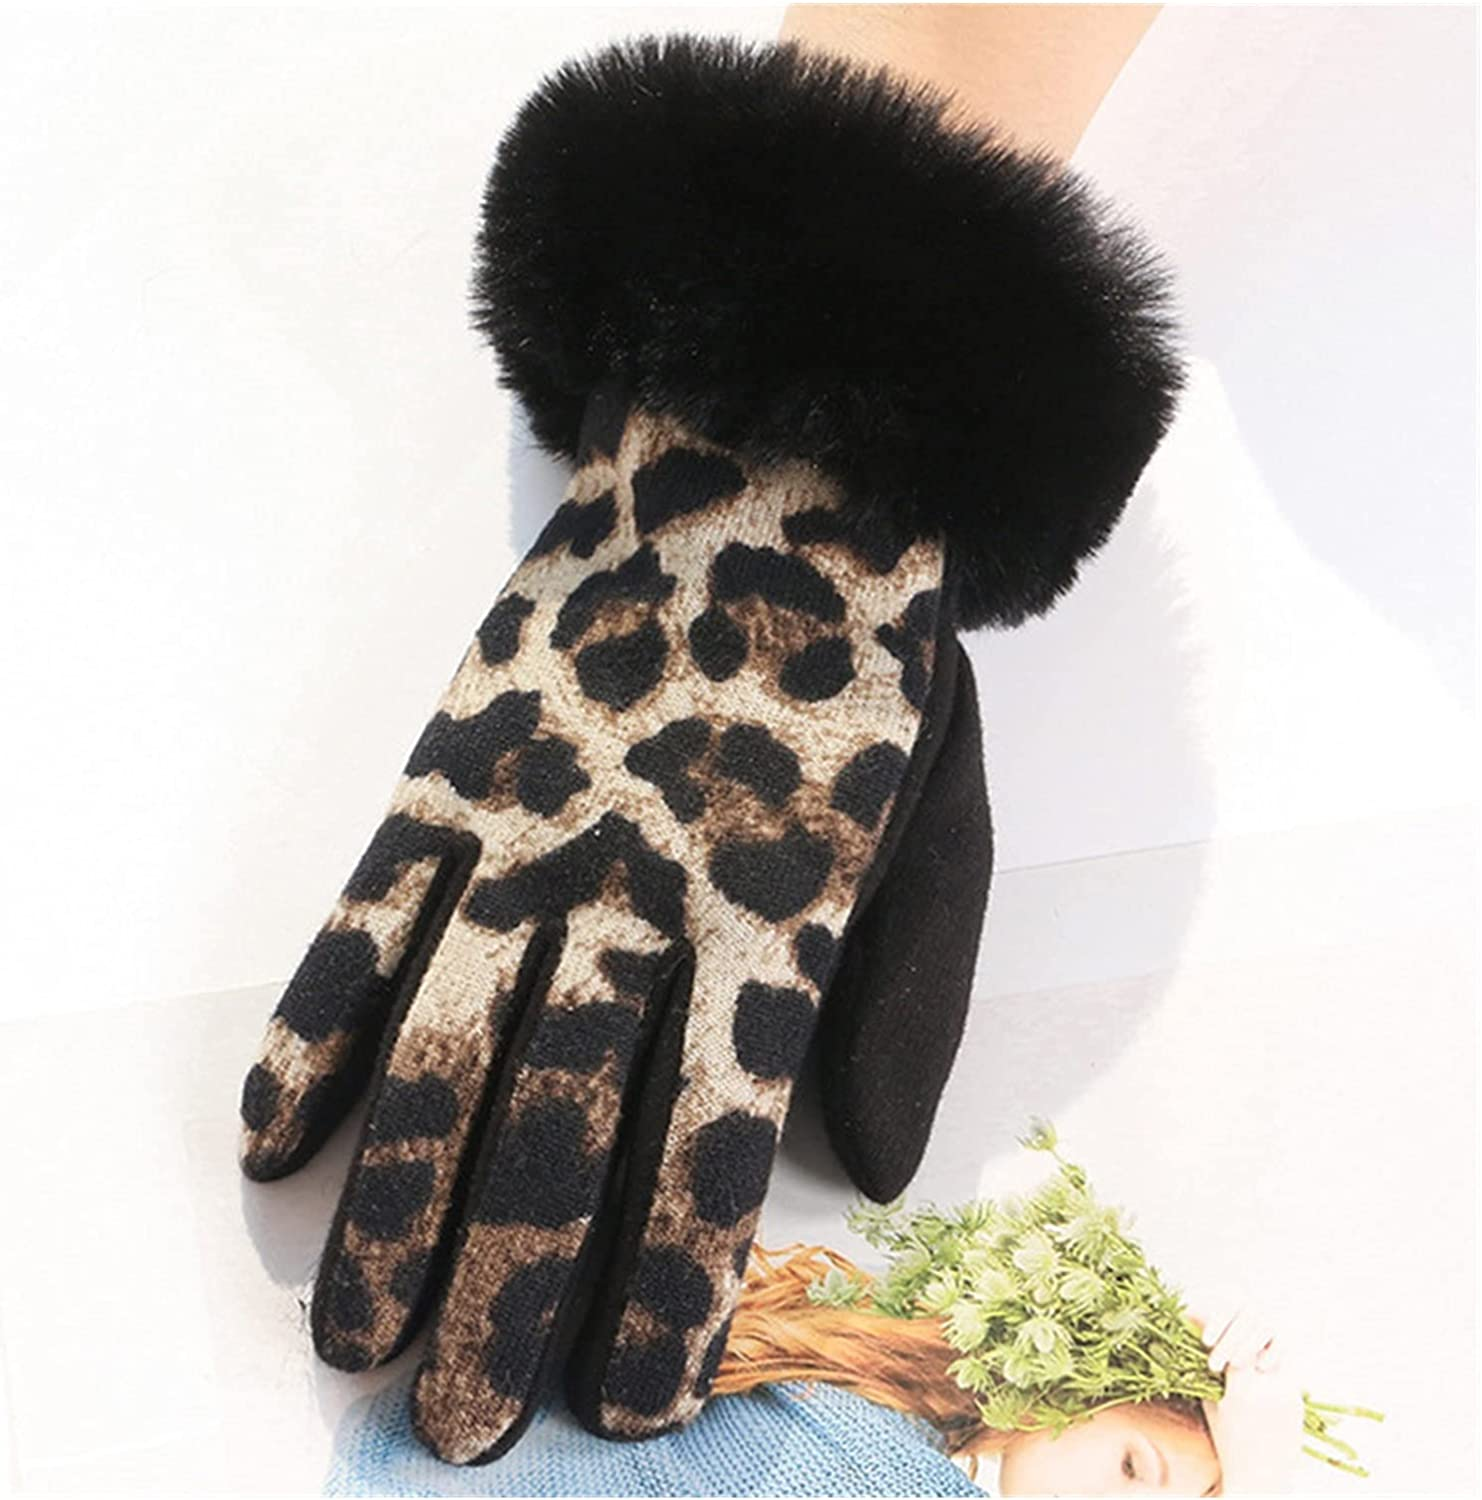 CHHNGPON Bridal Gloves Fashion Personality Leopard spot Soft Plush Touch Screen Ladies Gloves Plus Velvet Driving Inside to Keep Warm and Cold (Color : Khaki, Gloves Size : One Size)